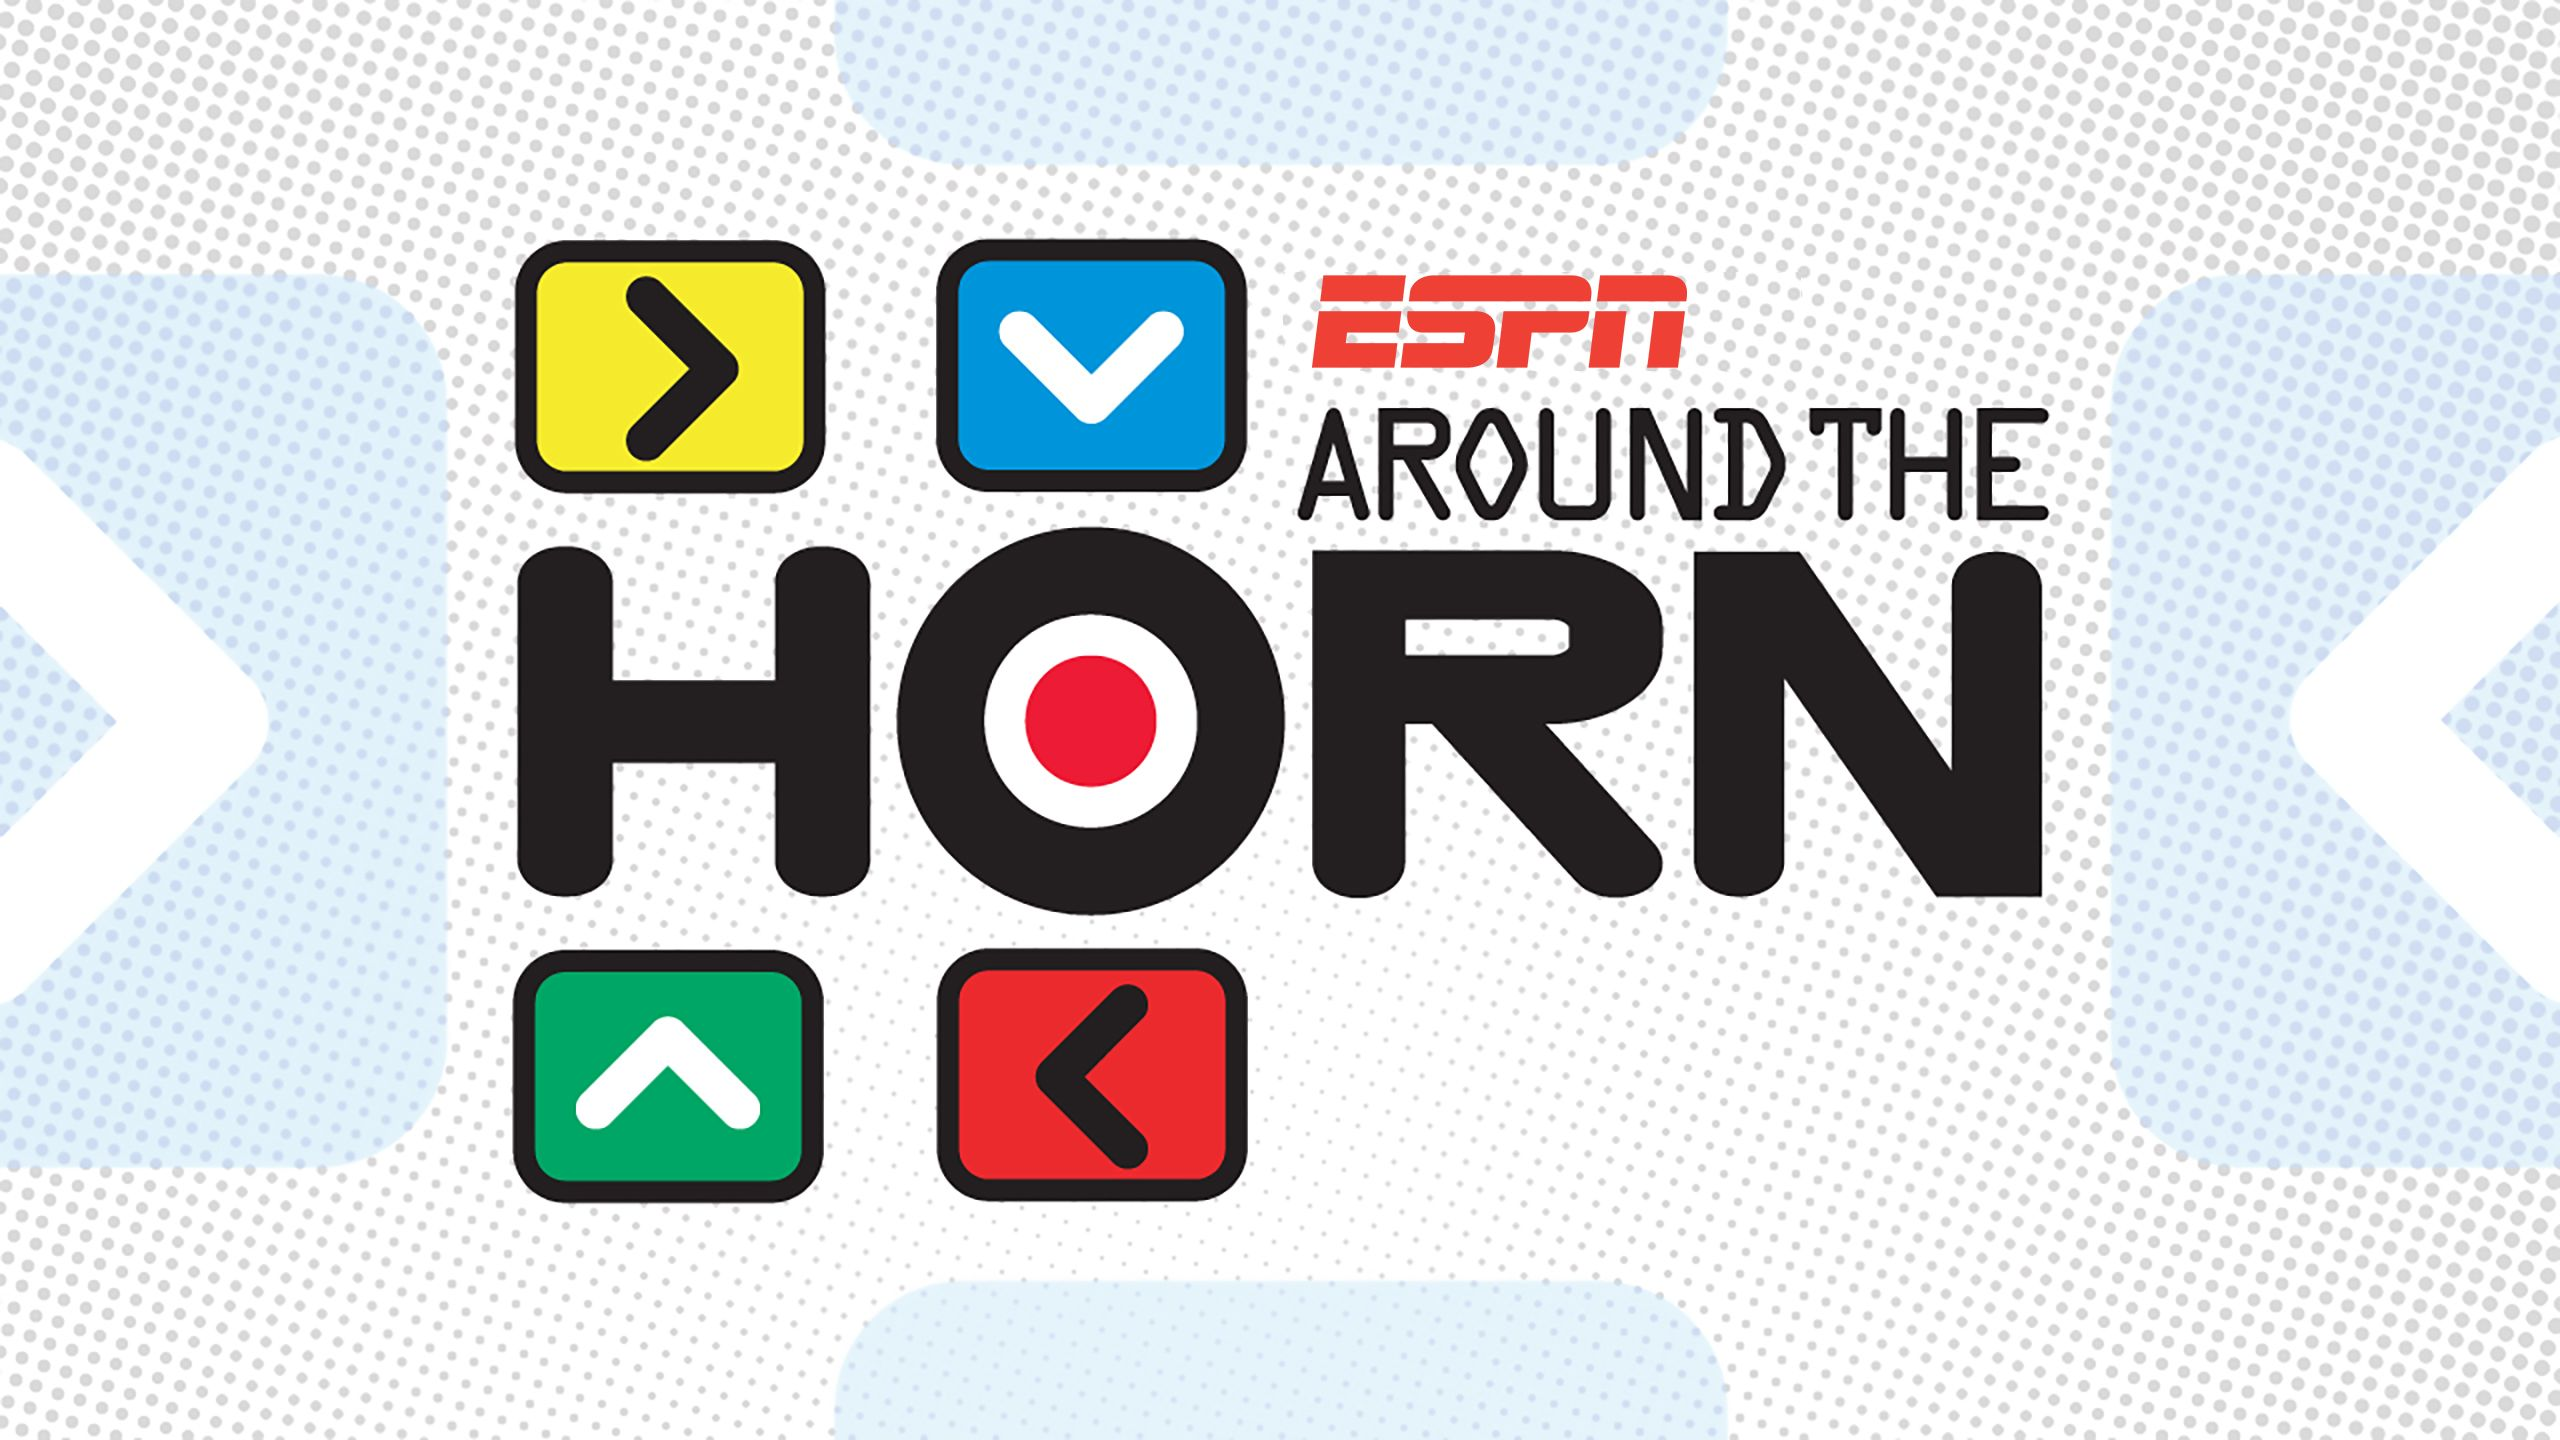 Wed, 2/21 - Around The Horn